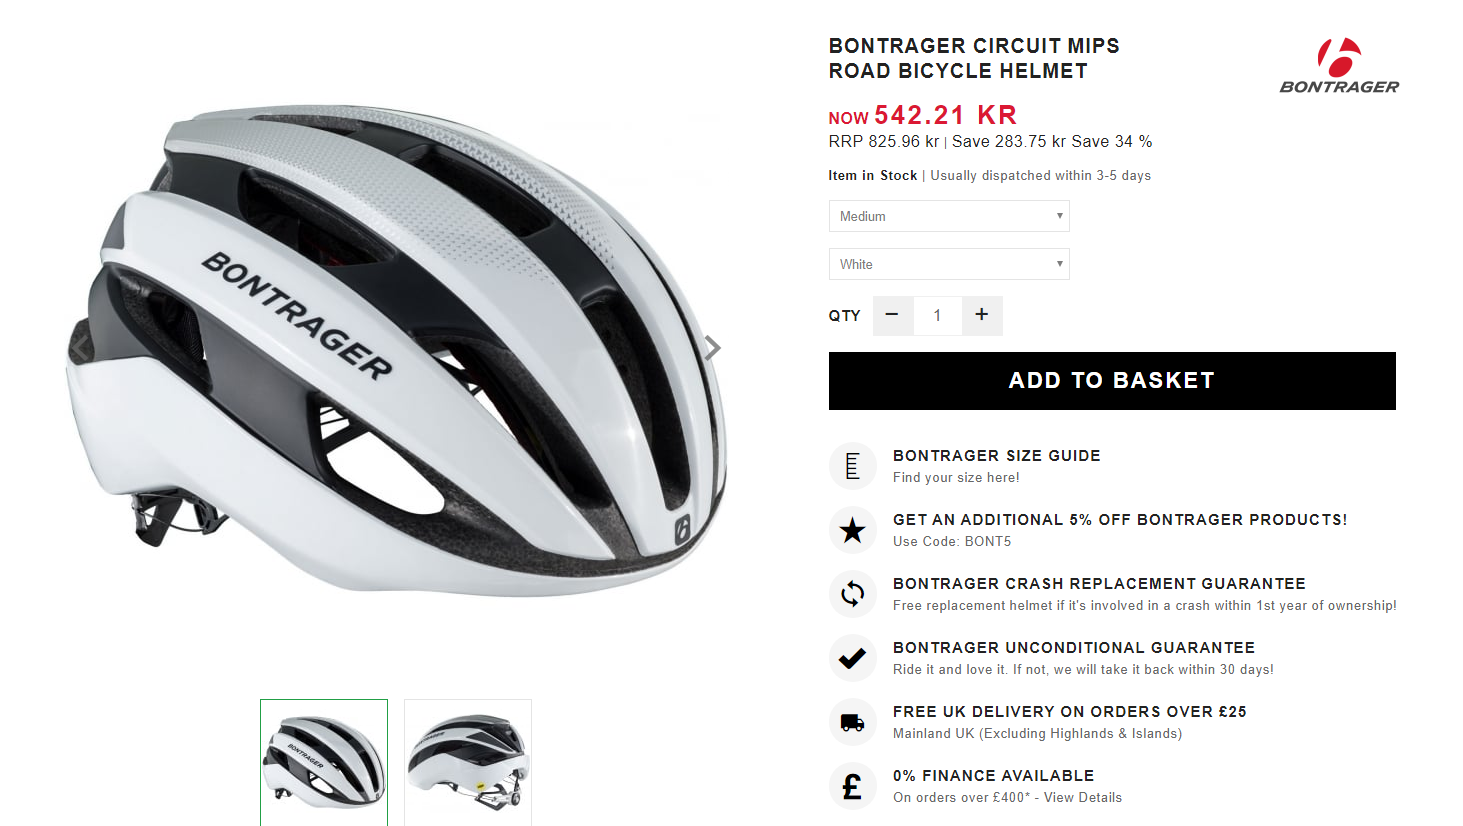 bontrager cycle helmet